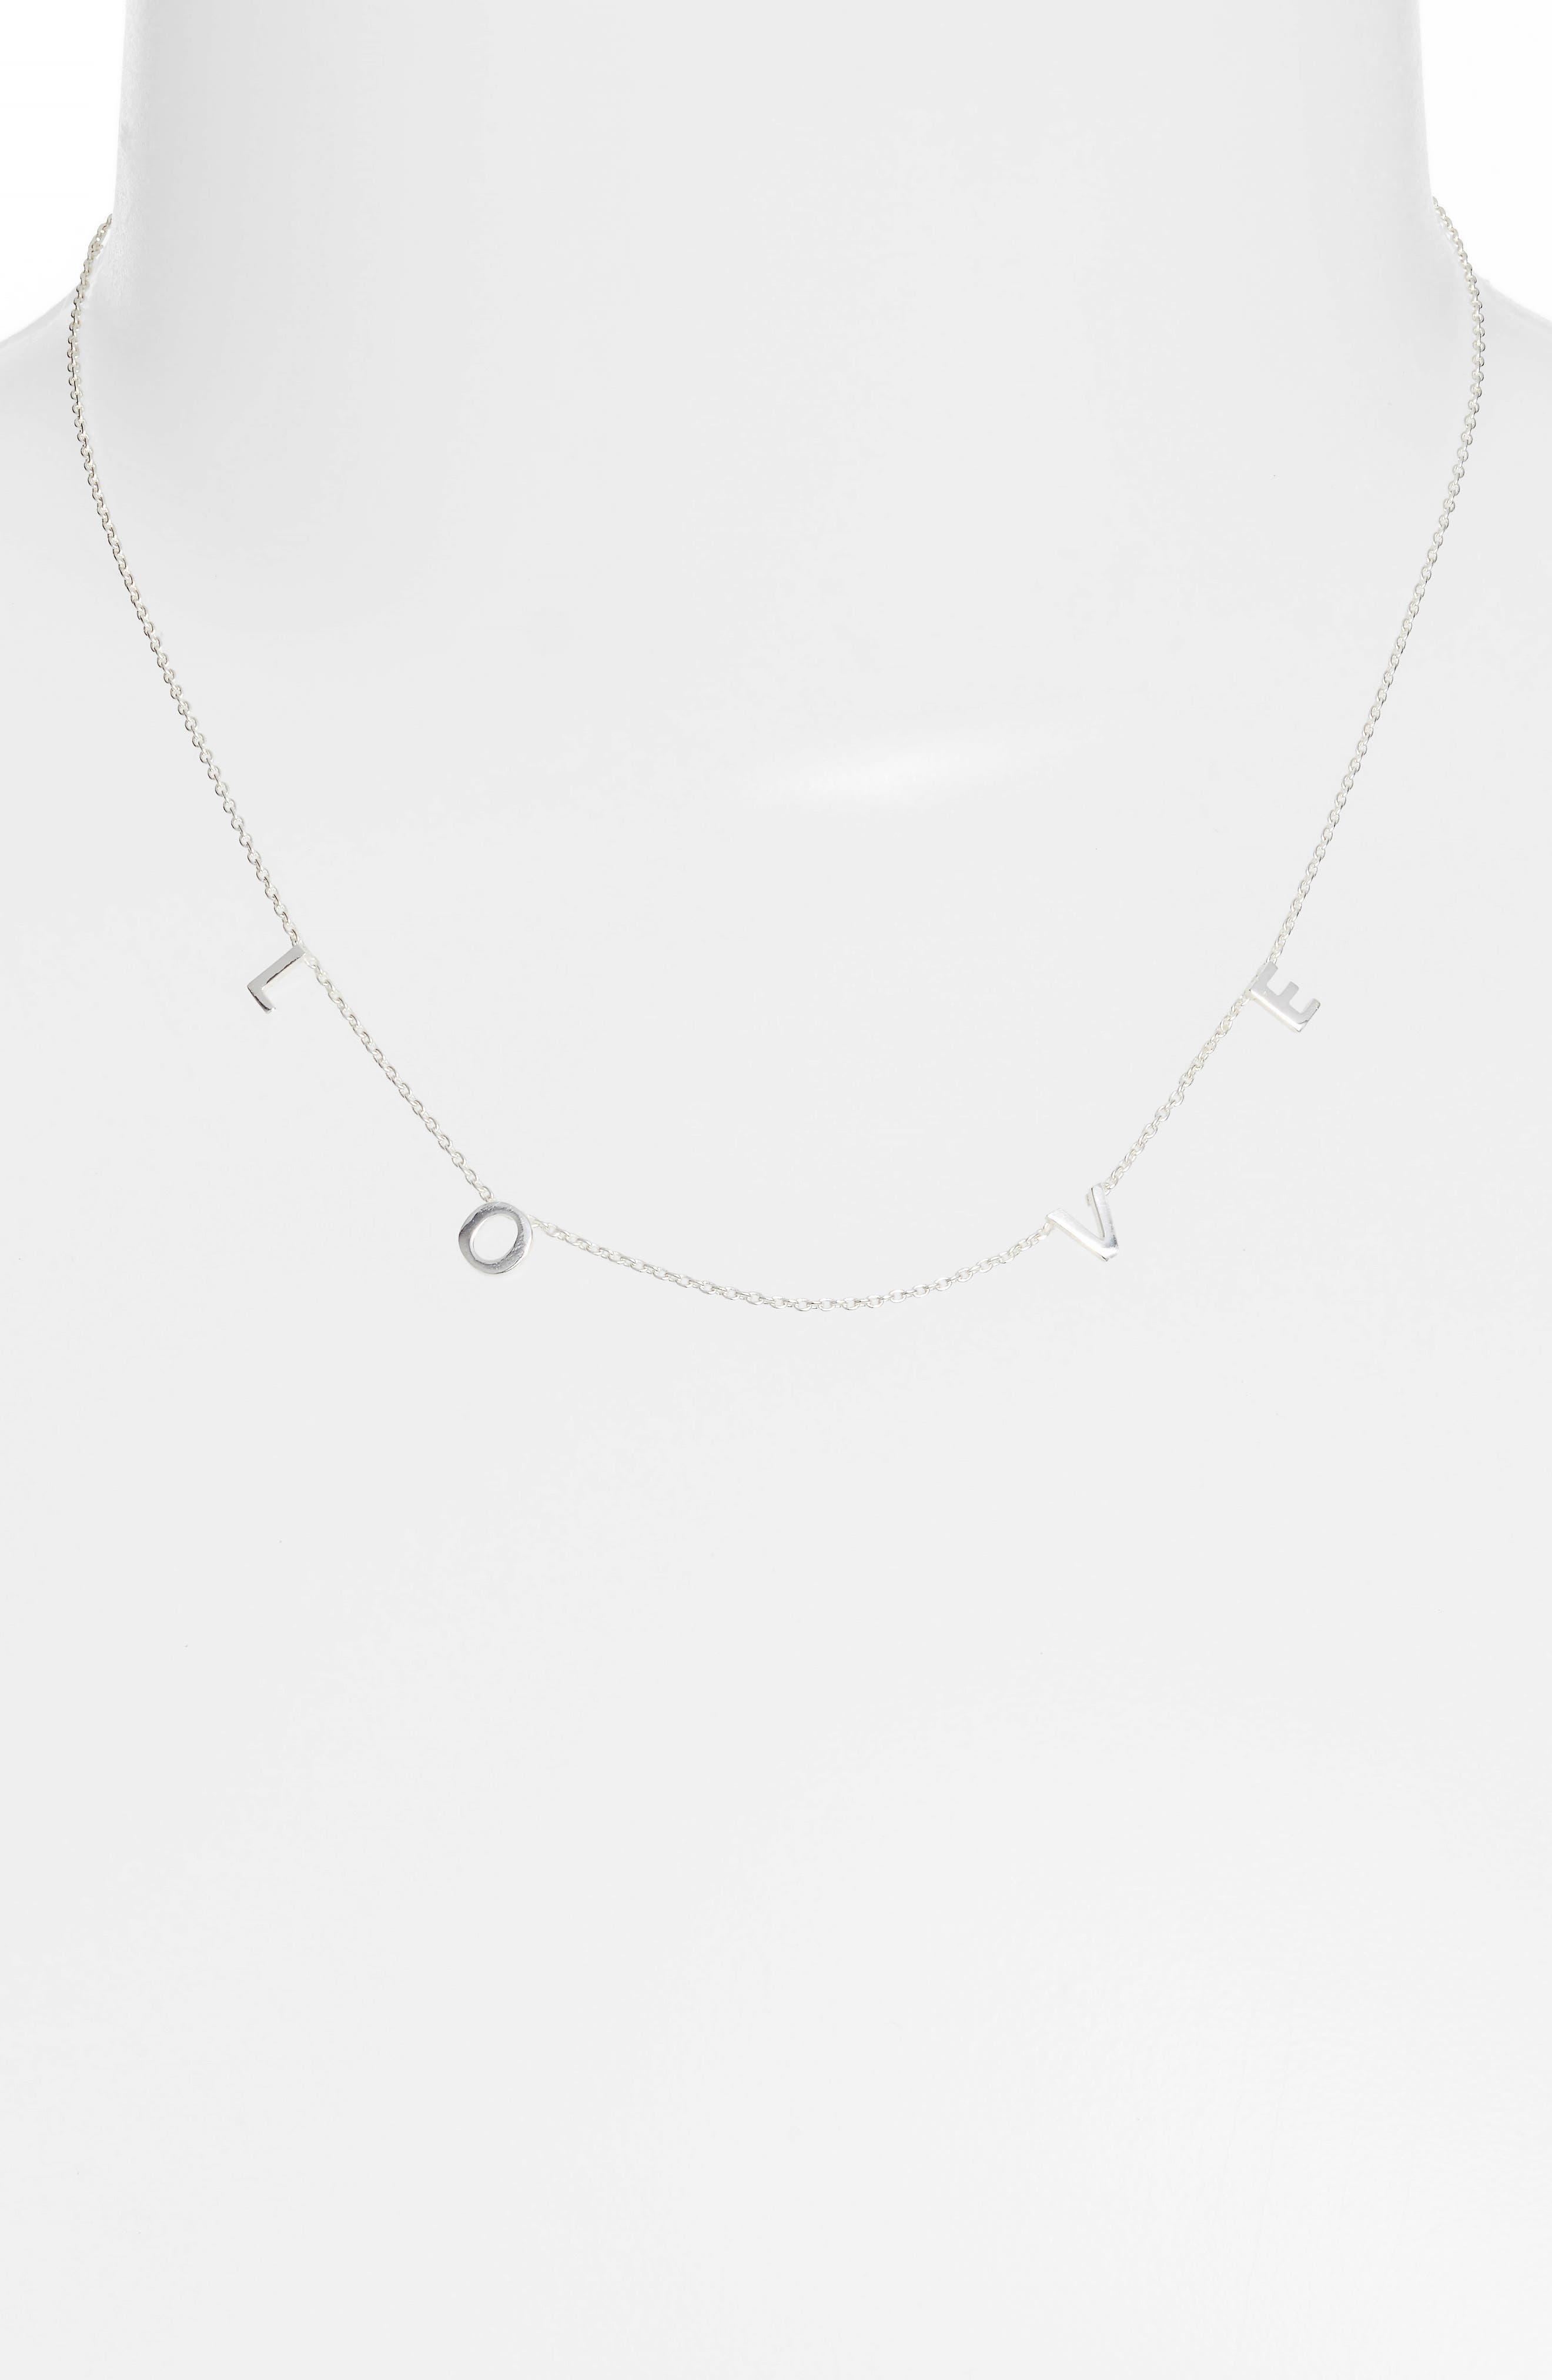 Love Frontal Necklace,                             Alternate thumbnail 2, color,                             040